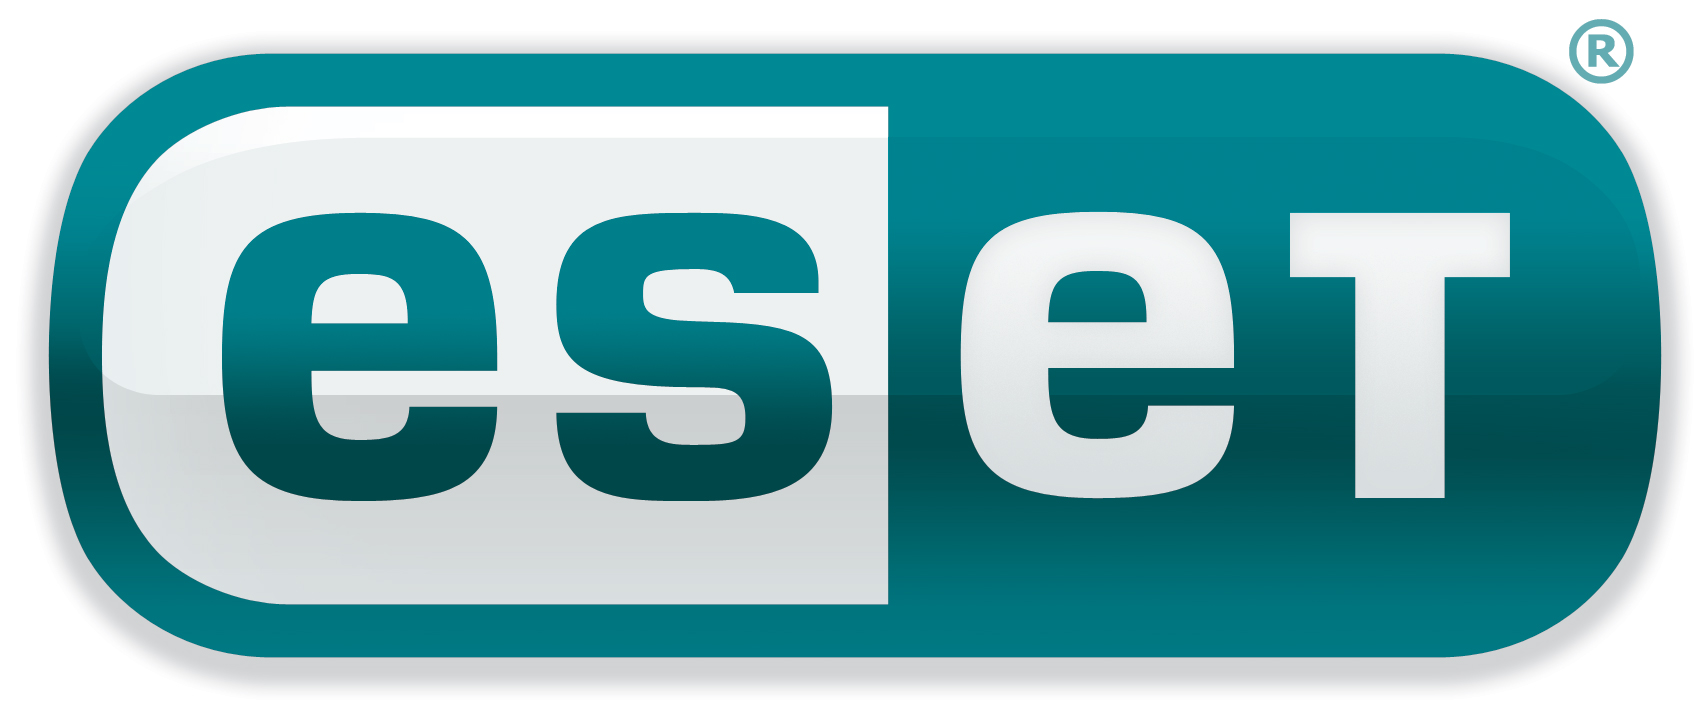 ESET antivirus and antispam solutions for CentOS Linux server with